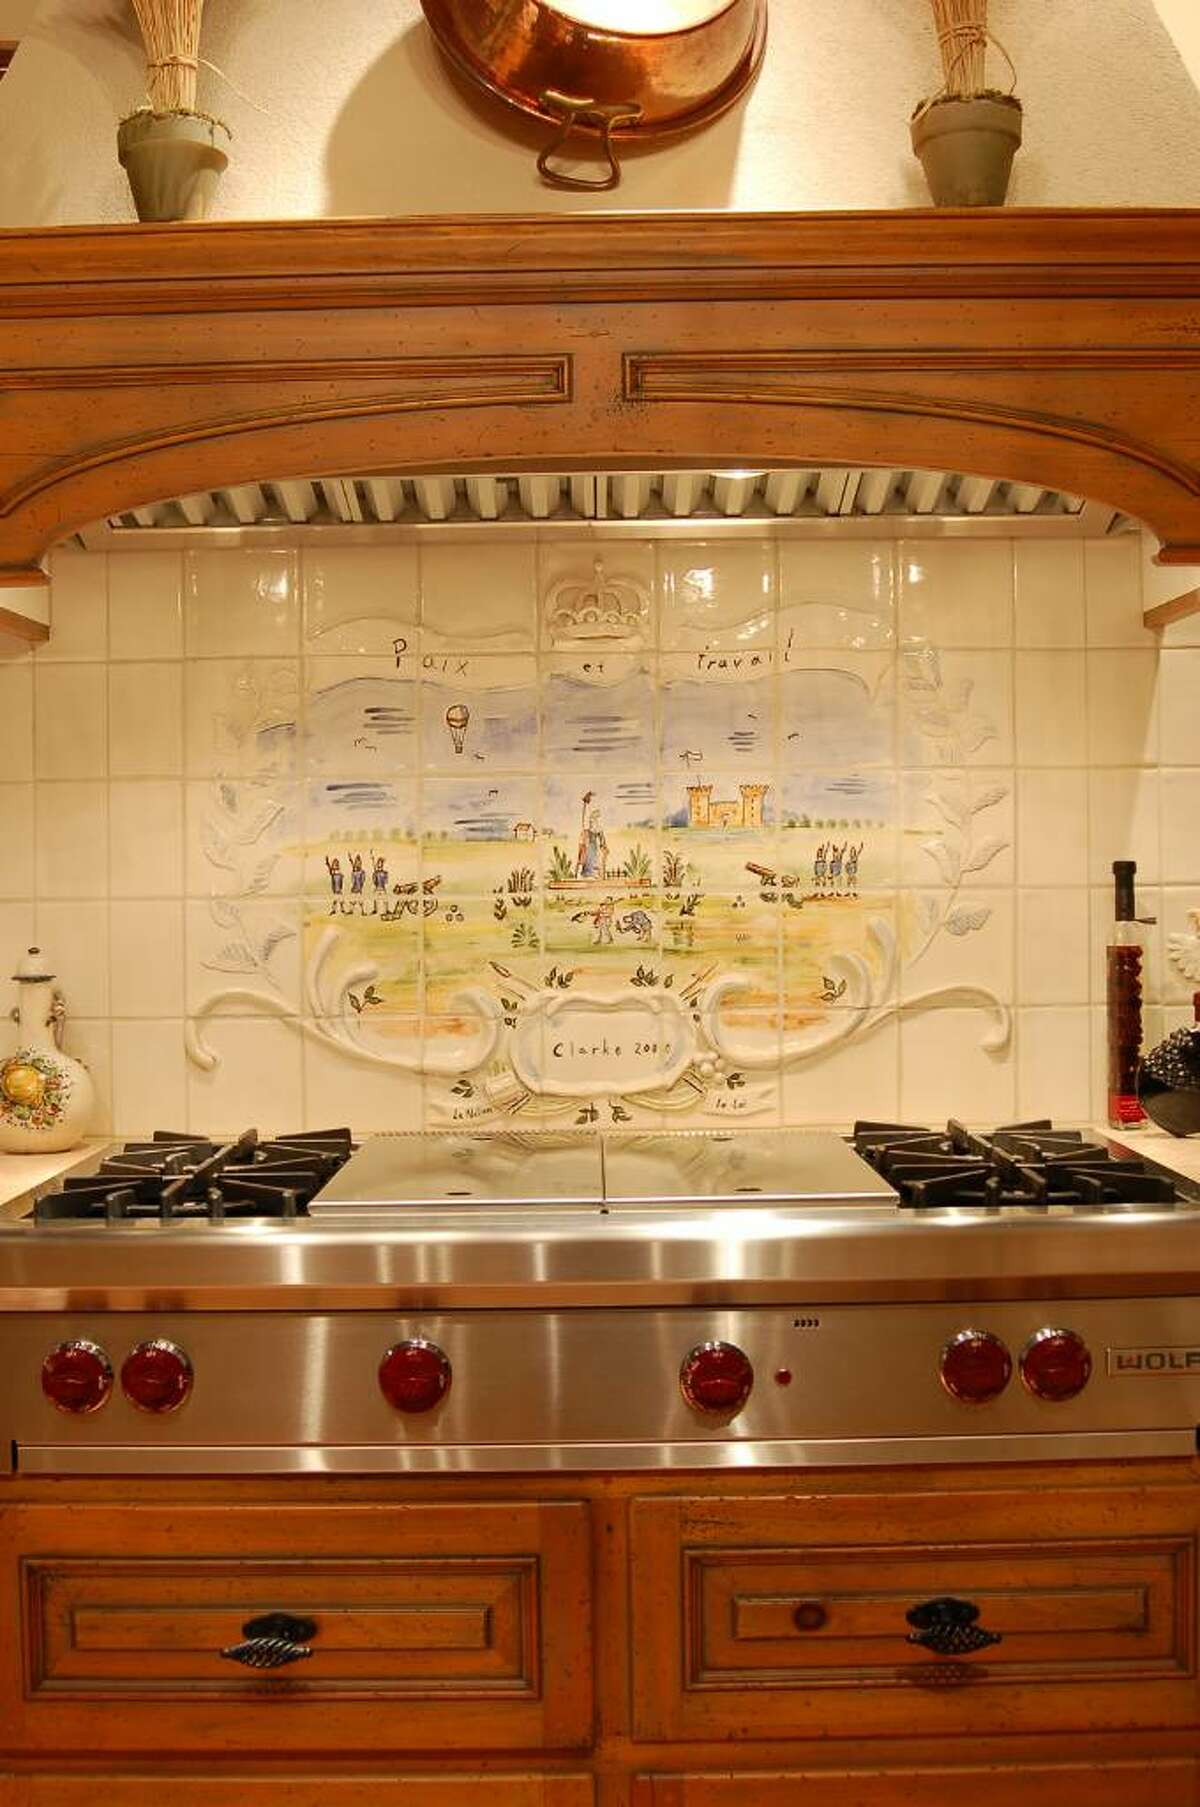 A Wirth-Salander tile mural in the Clarke Corp. luxury kitchen appliance showroom in South Norwalk.